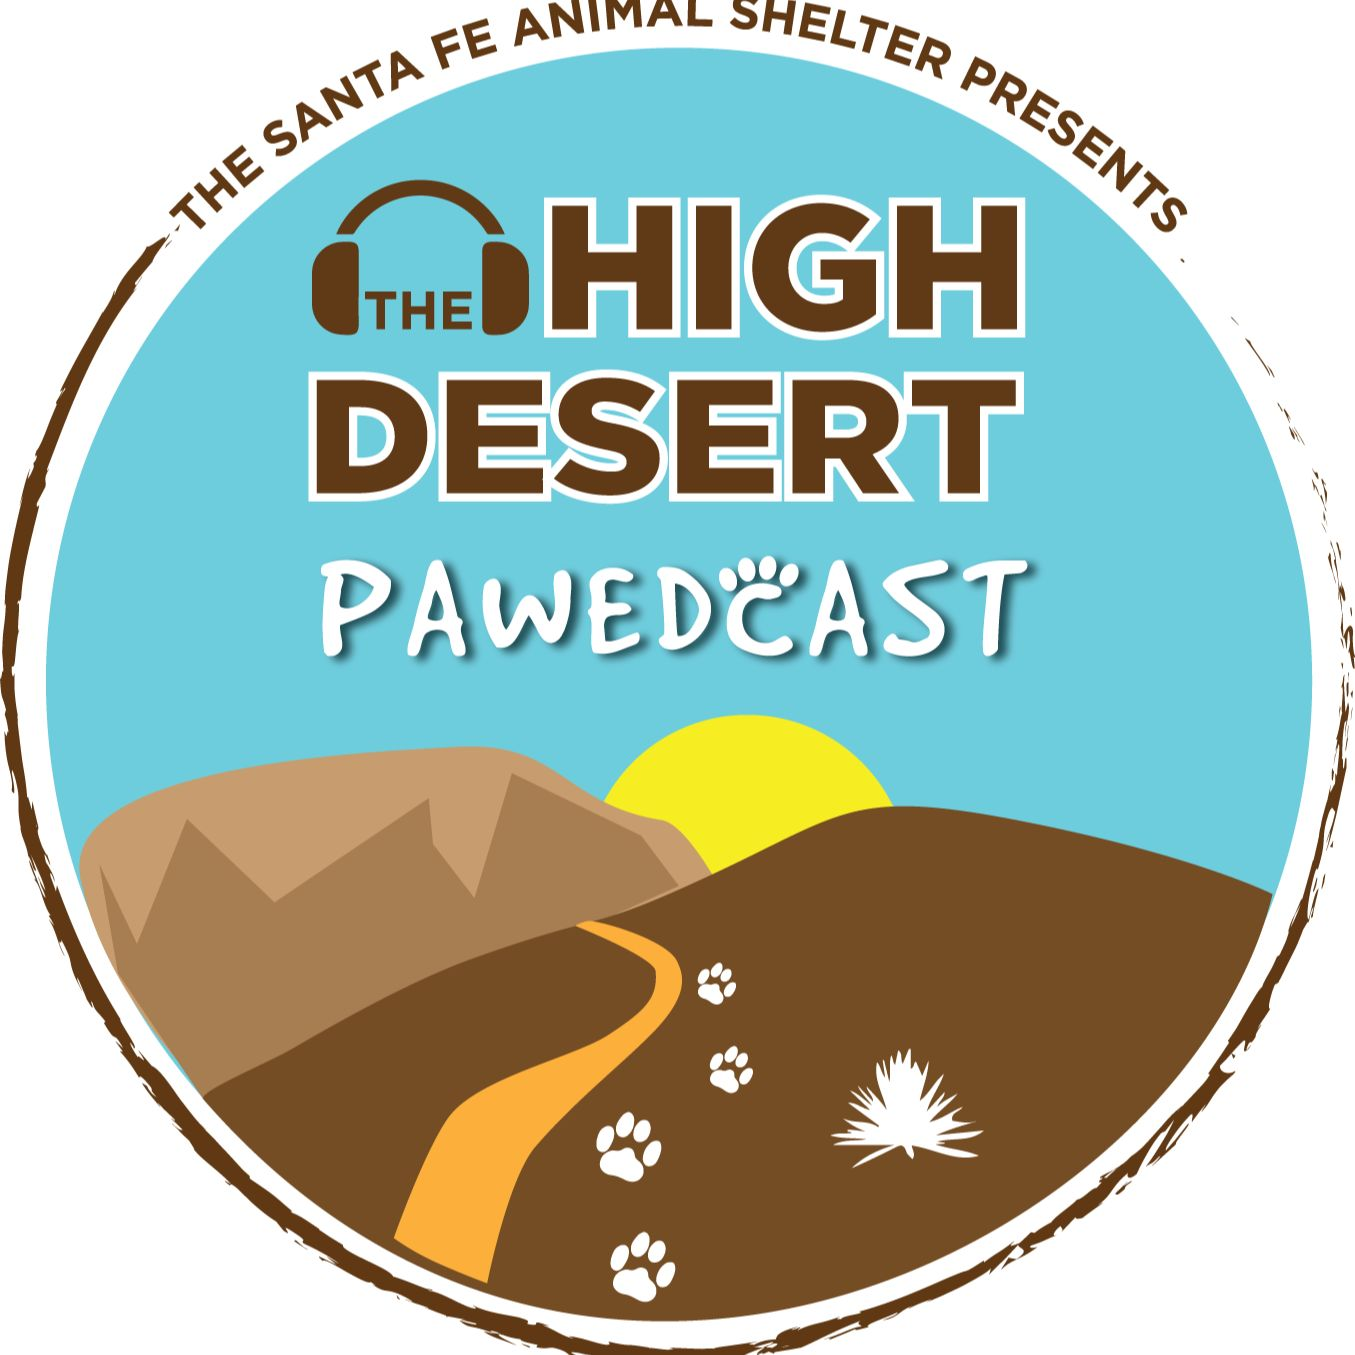 High Desert Pawedcast